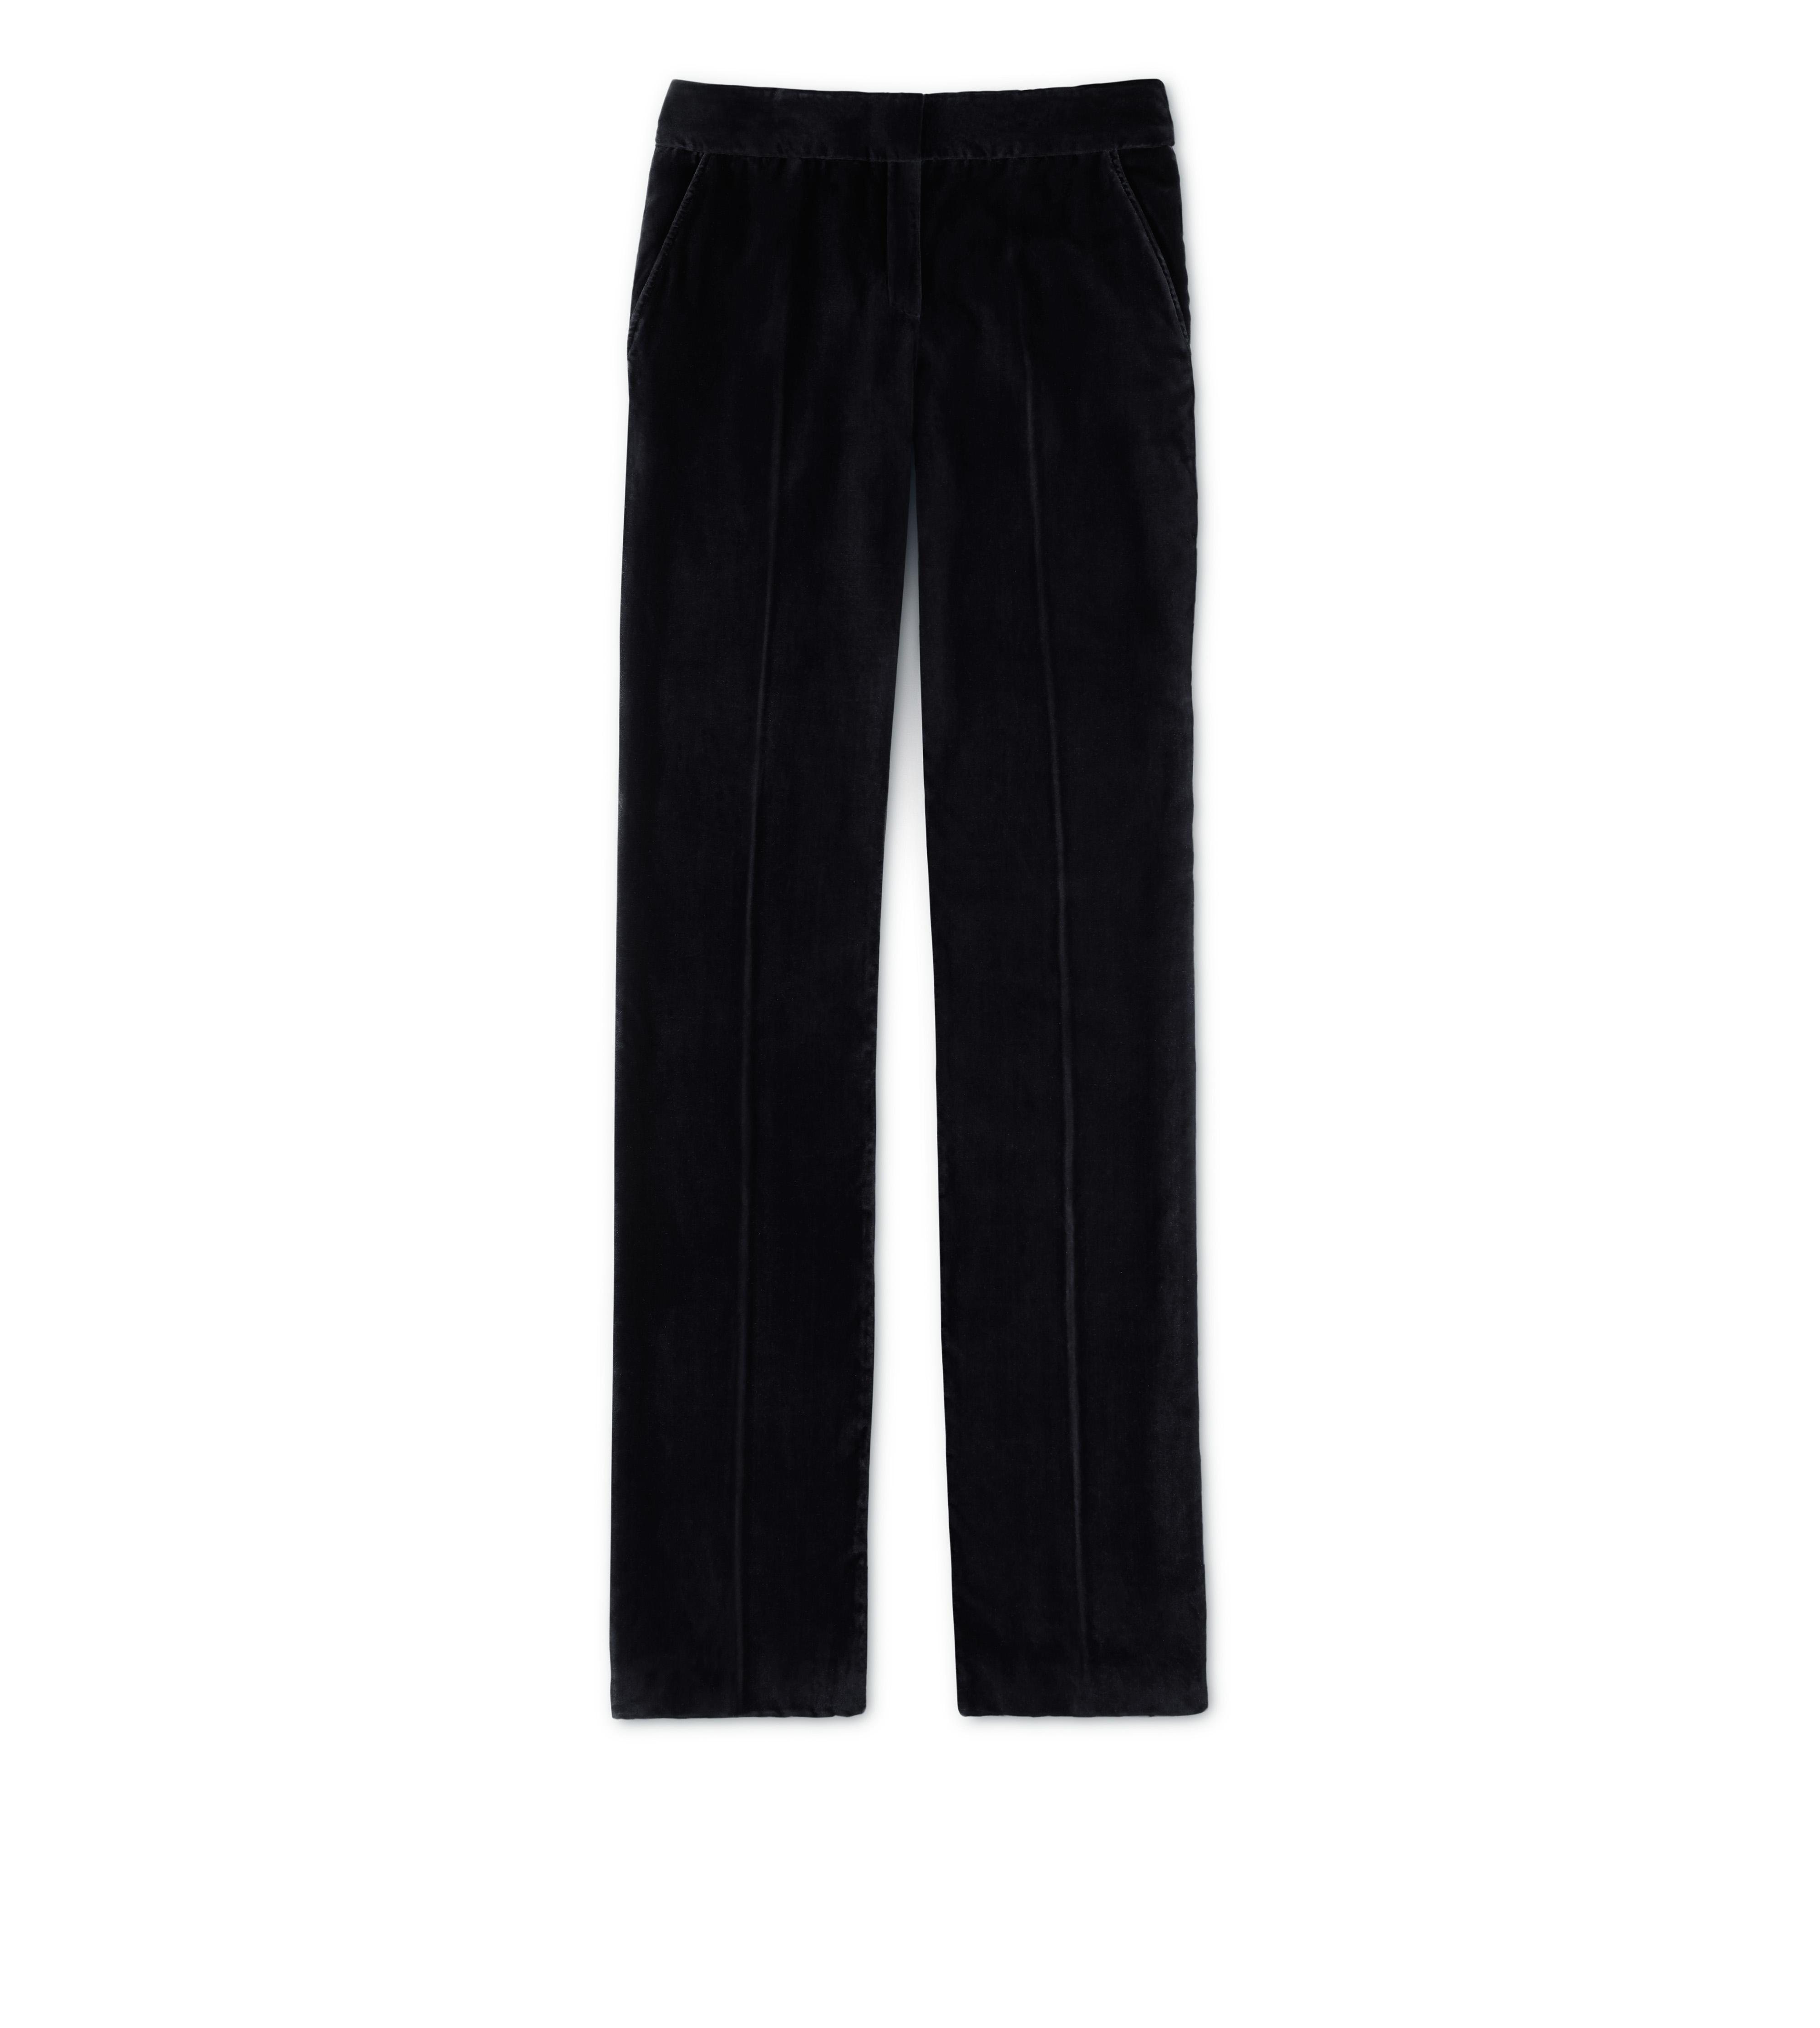 GABARDINE STRETCH TAILORED STRAIGHT LEG PANT A thumbnail